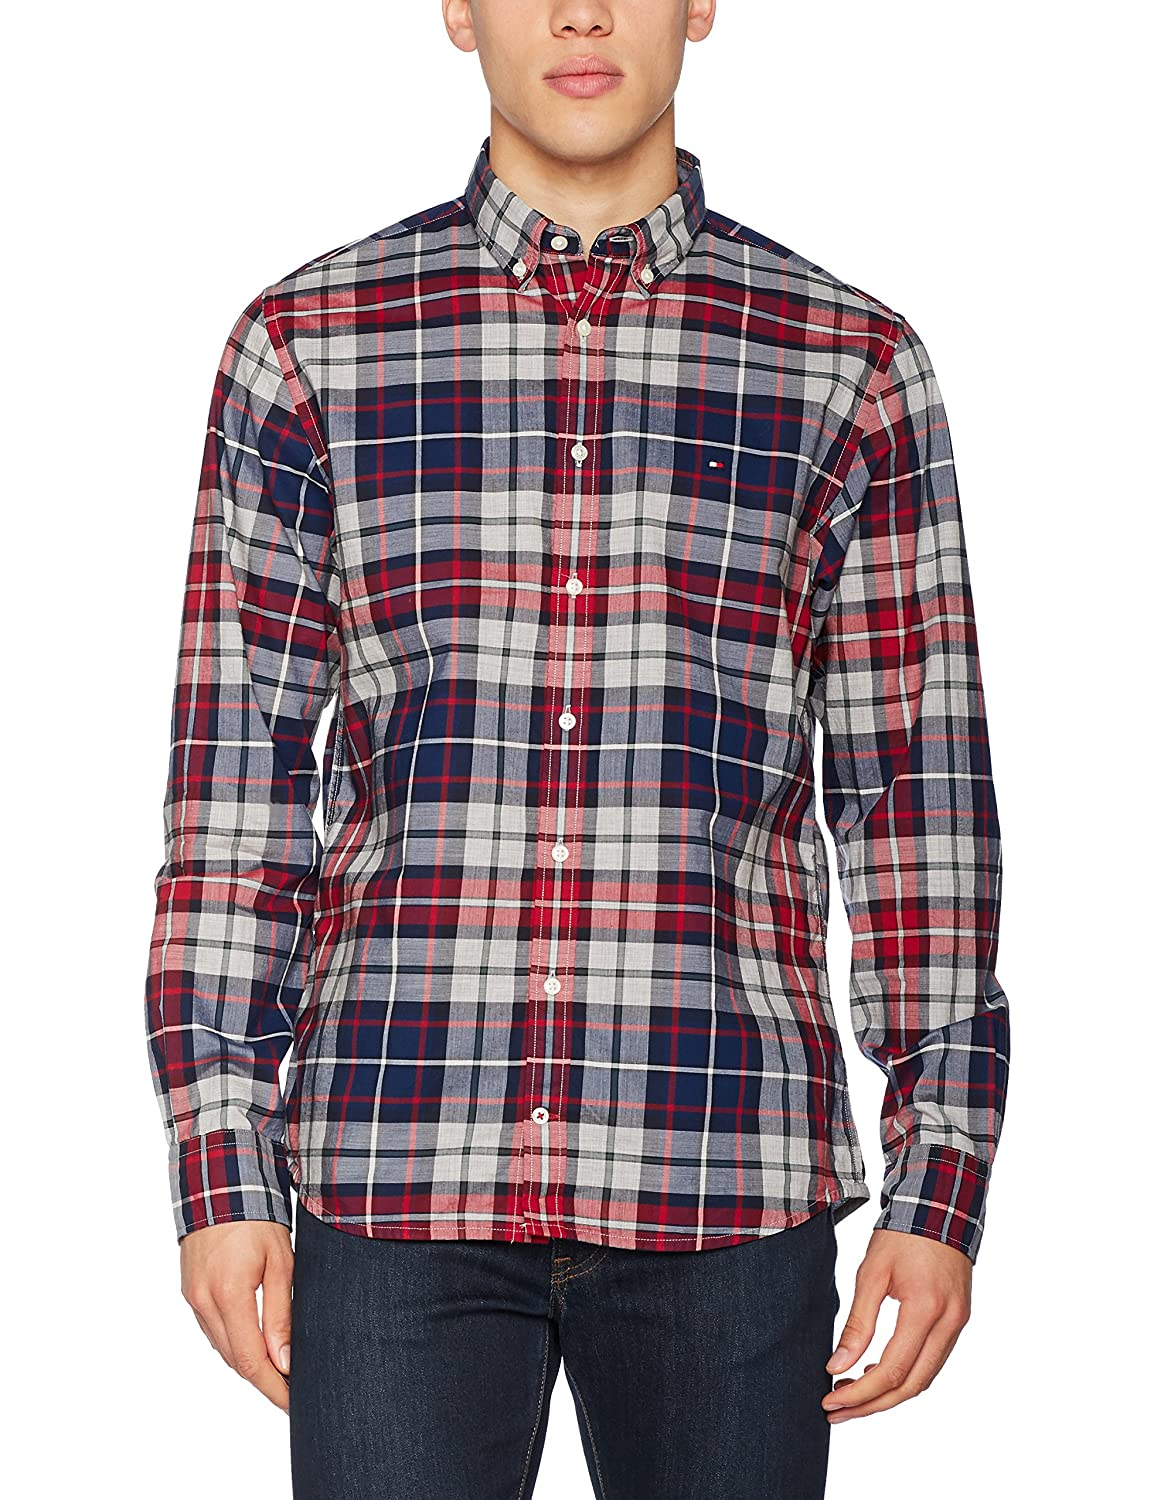 Tommy Hilfiger Mens Casual Shirt